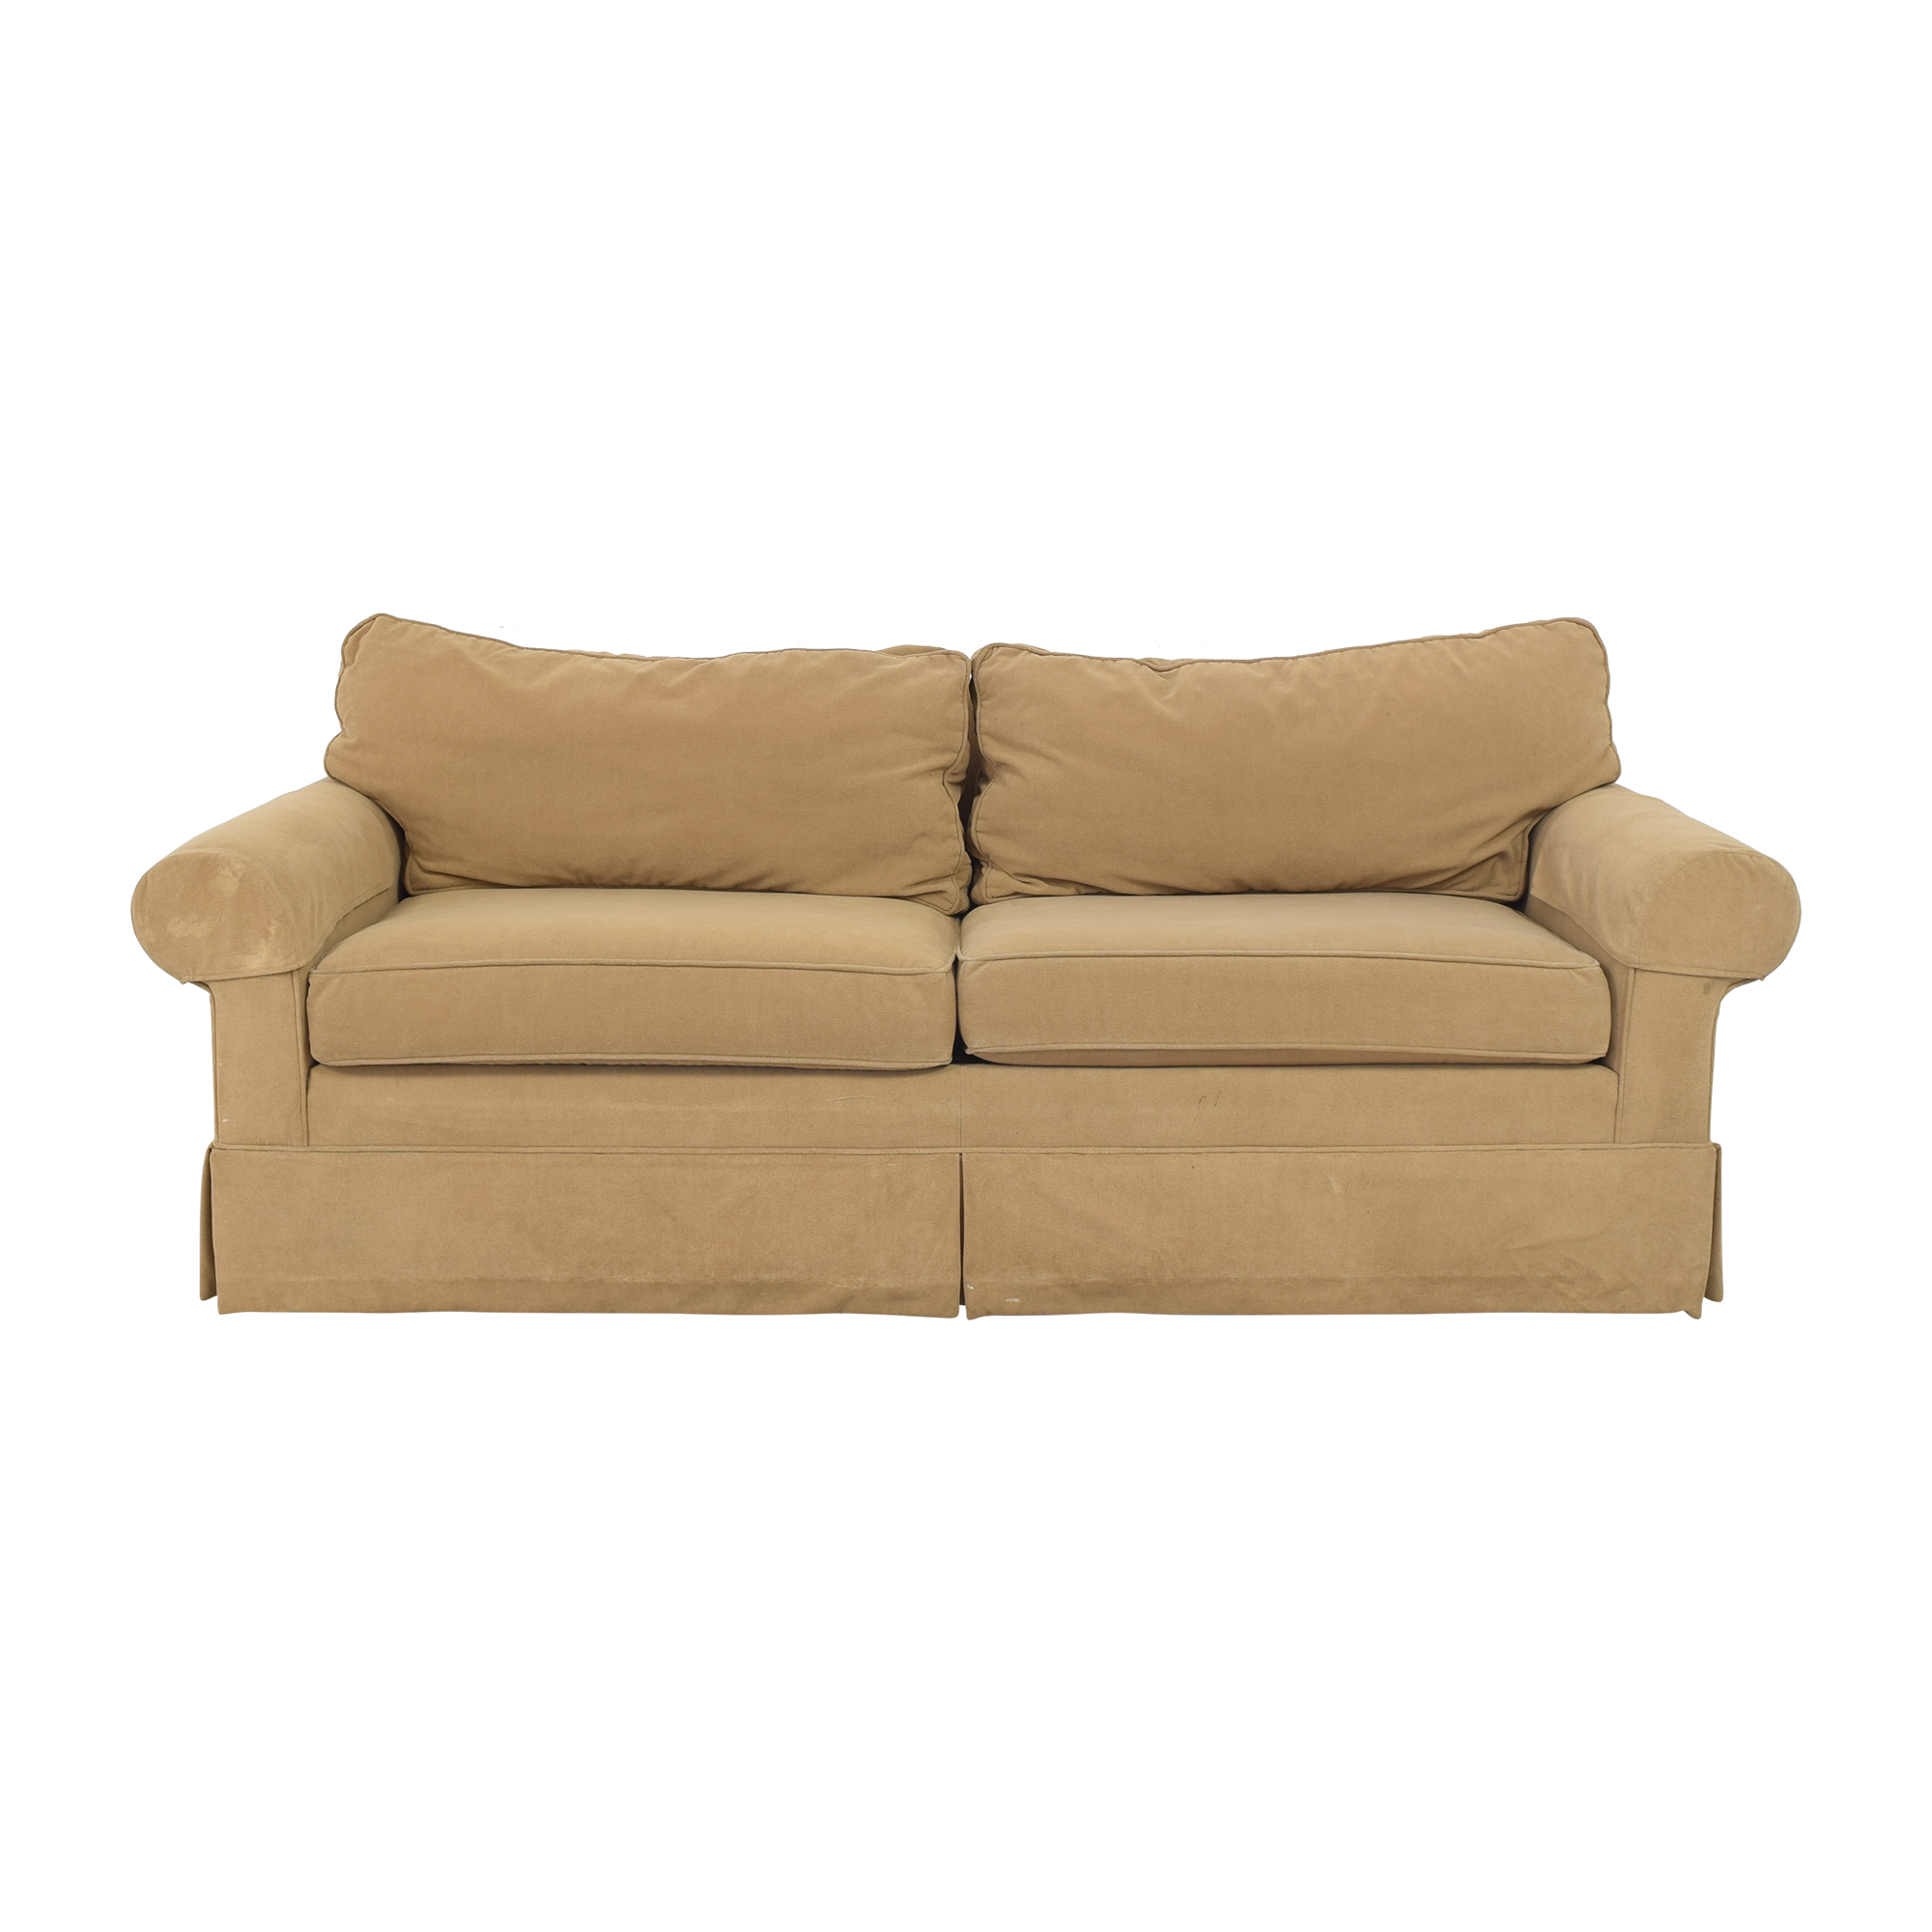 Ethan Allen Ethan Allen Skirted Roll Arm Sofa